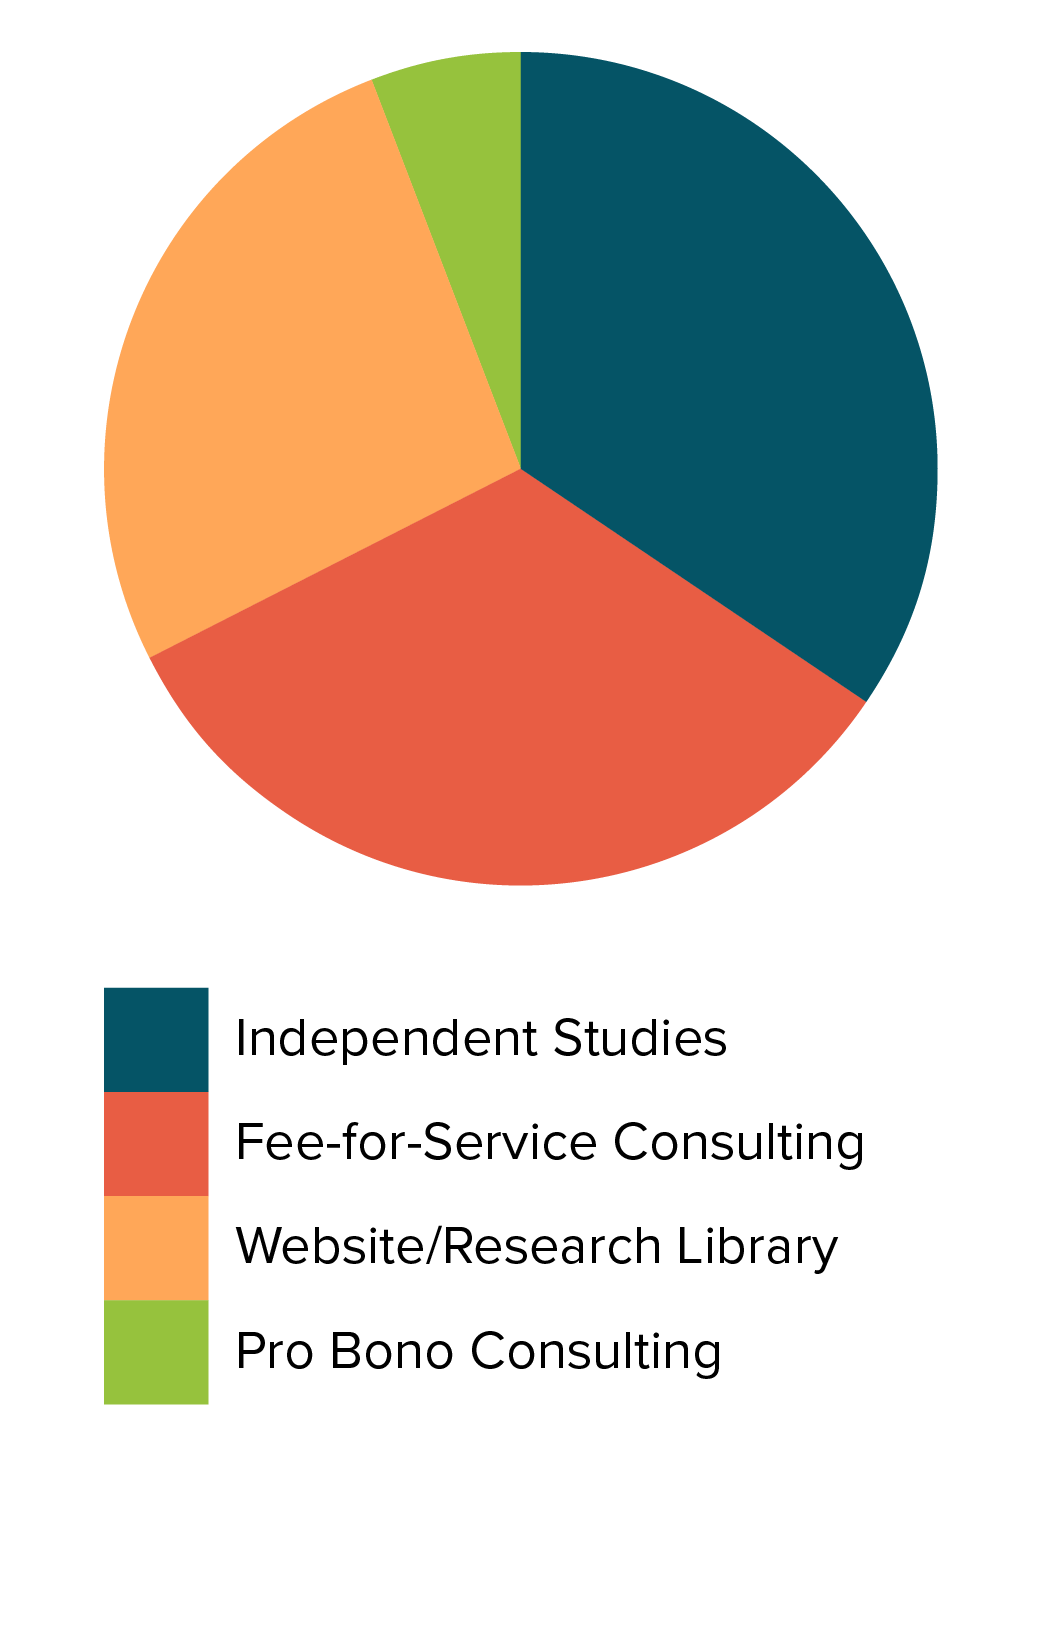 Faunalytics Pie Chart